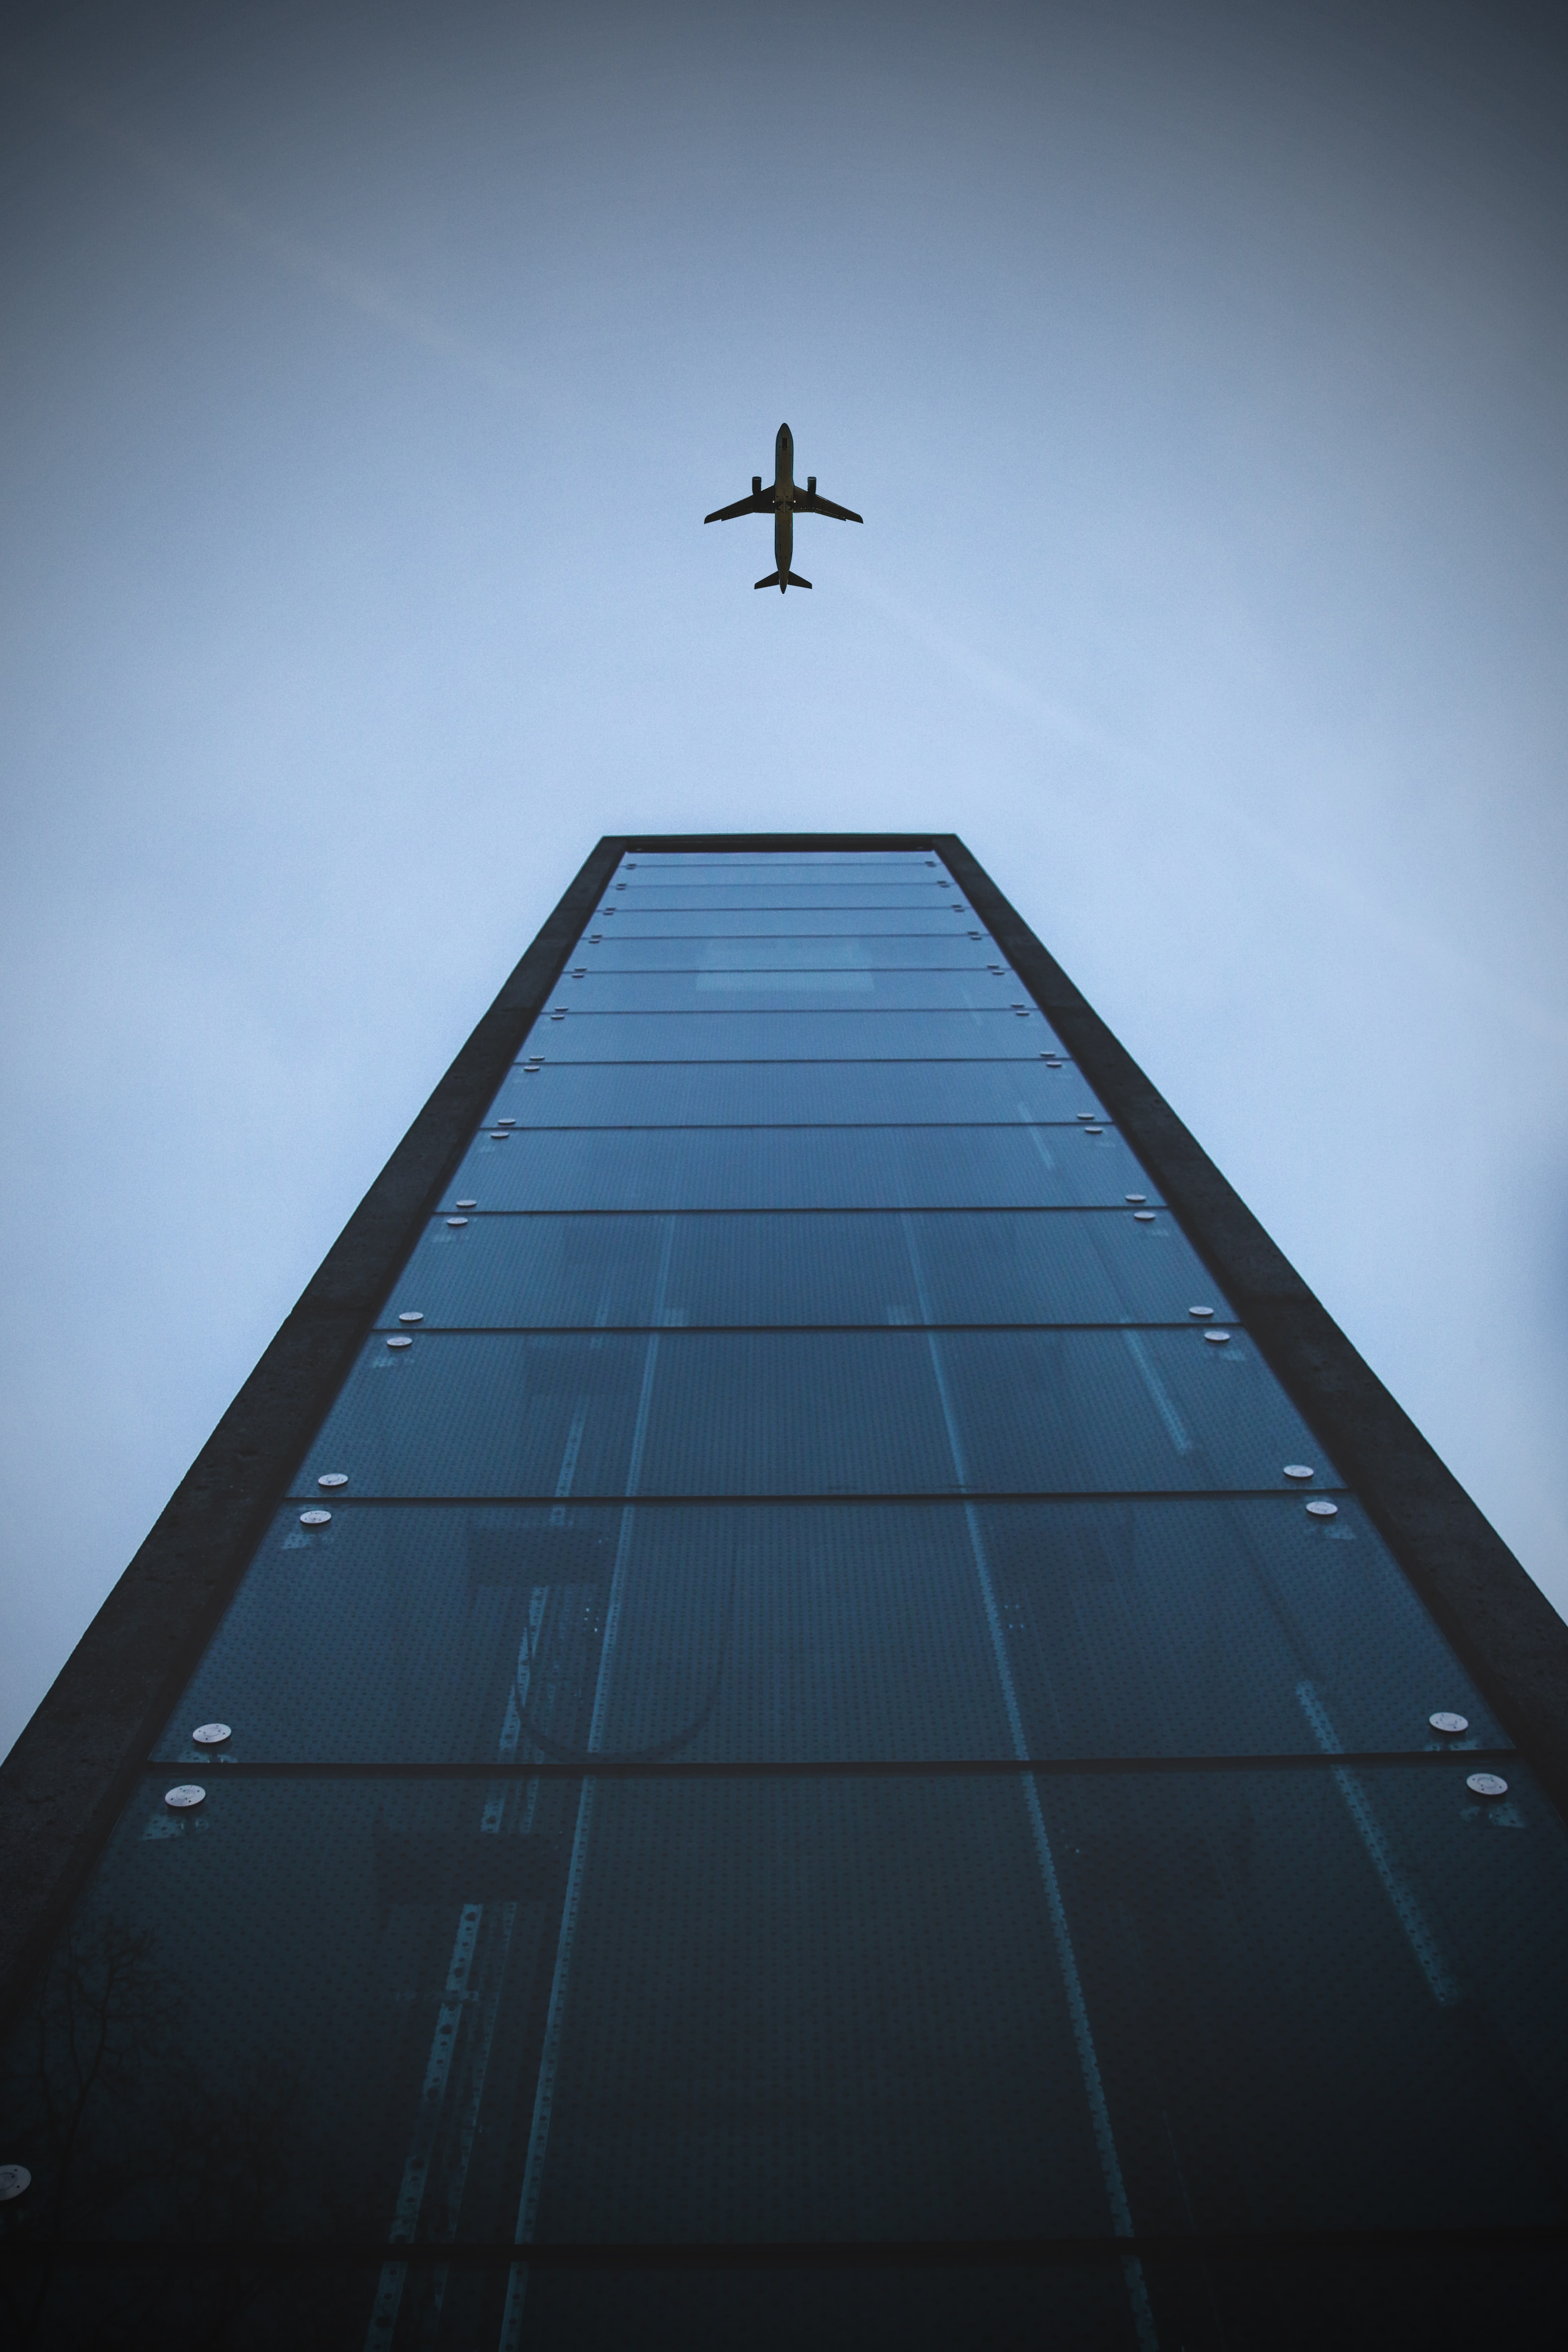 low-angle shot photography of building and airplane